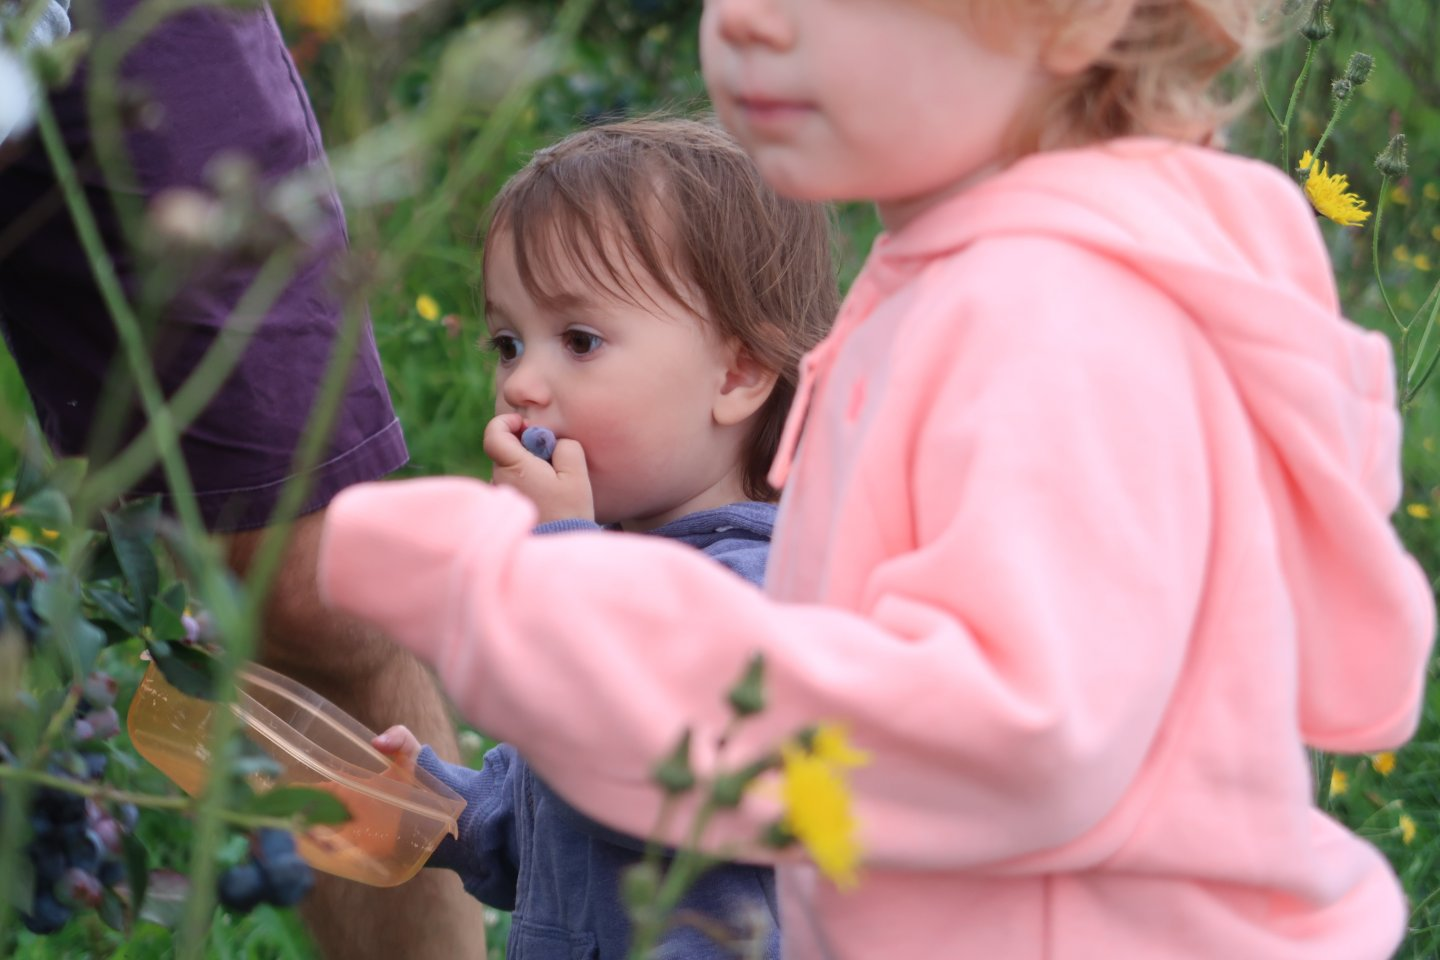 M picking blueberries in the foreground, with B stuffing blueberries into her mouth, in the background.